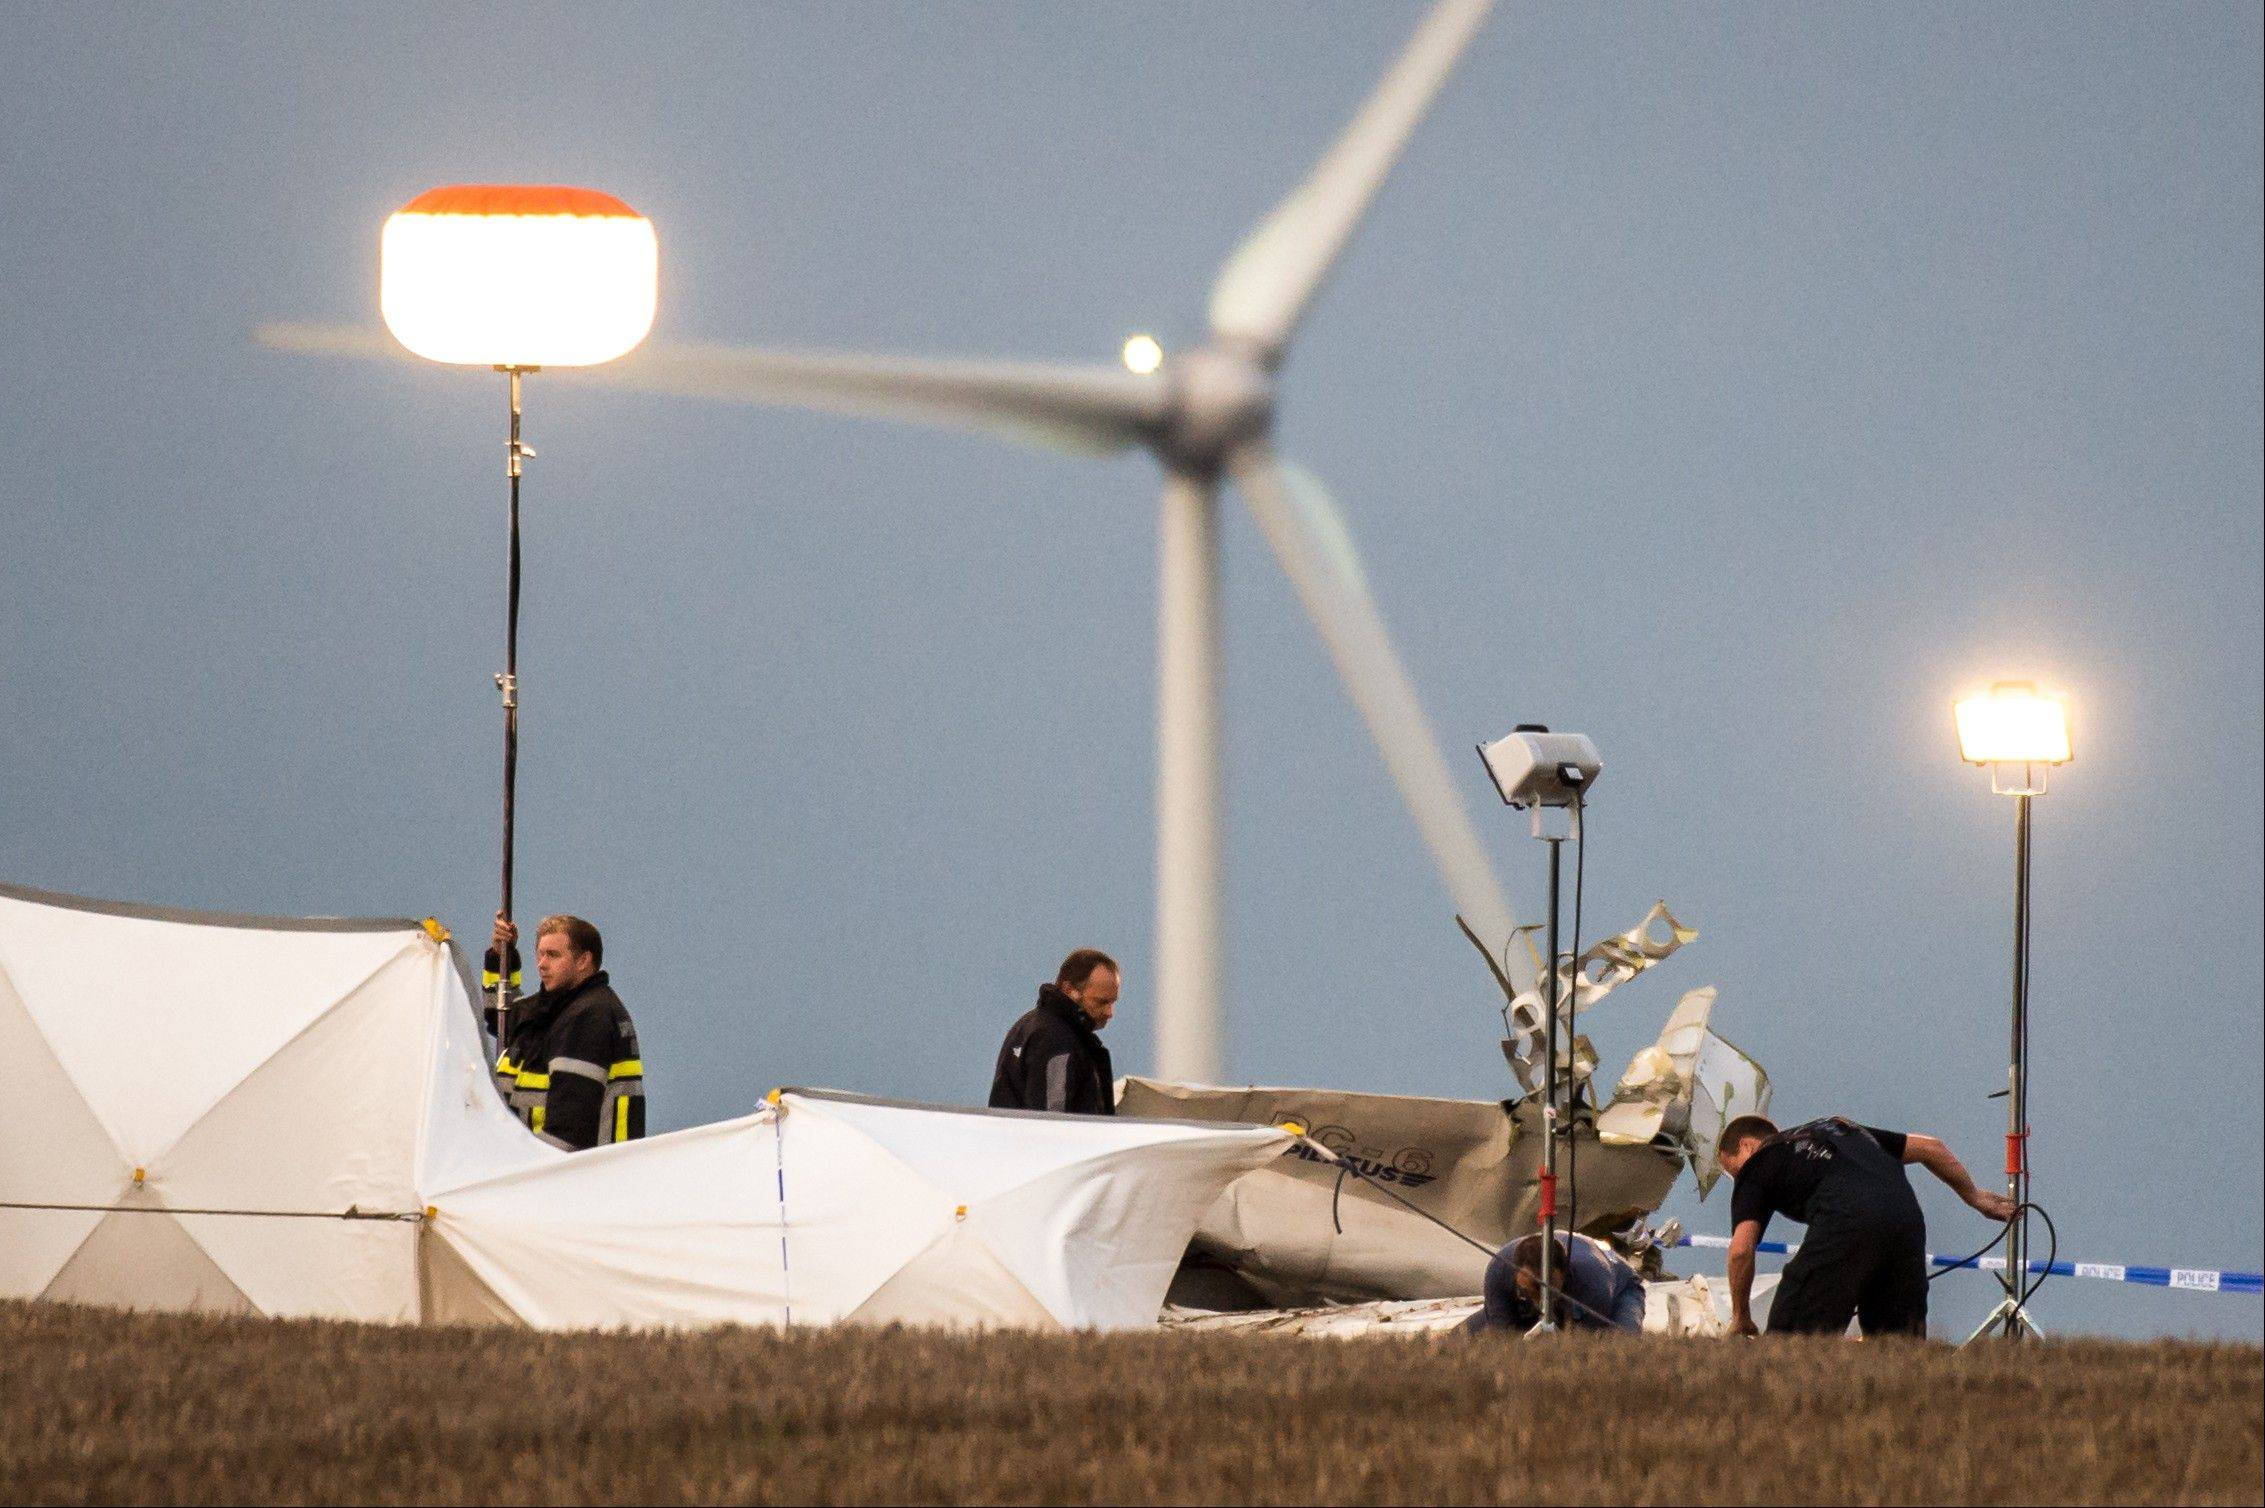 Rescue personnel work around the debris of a small plane which crashed in a field in Marchovelette, Belgium on Saturday.